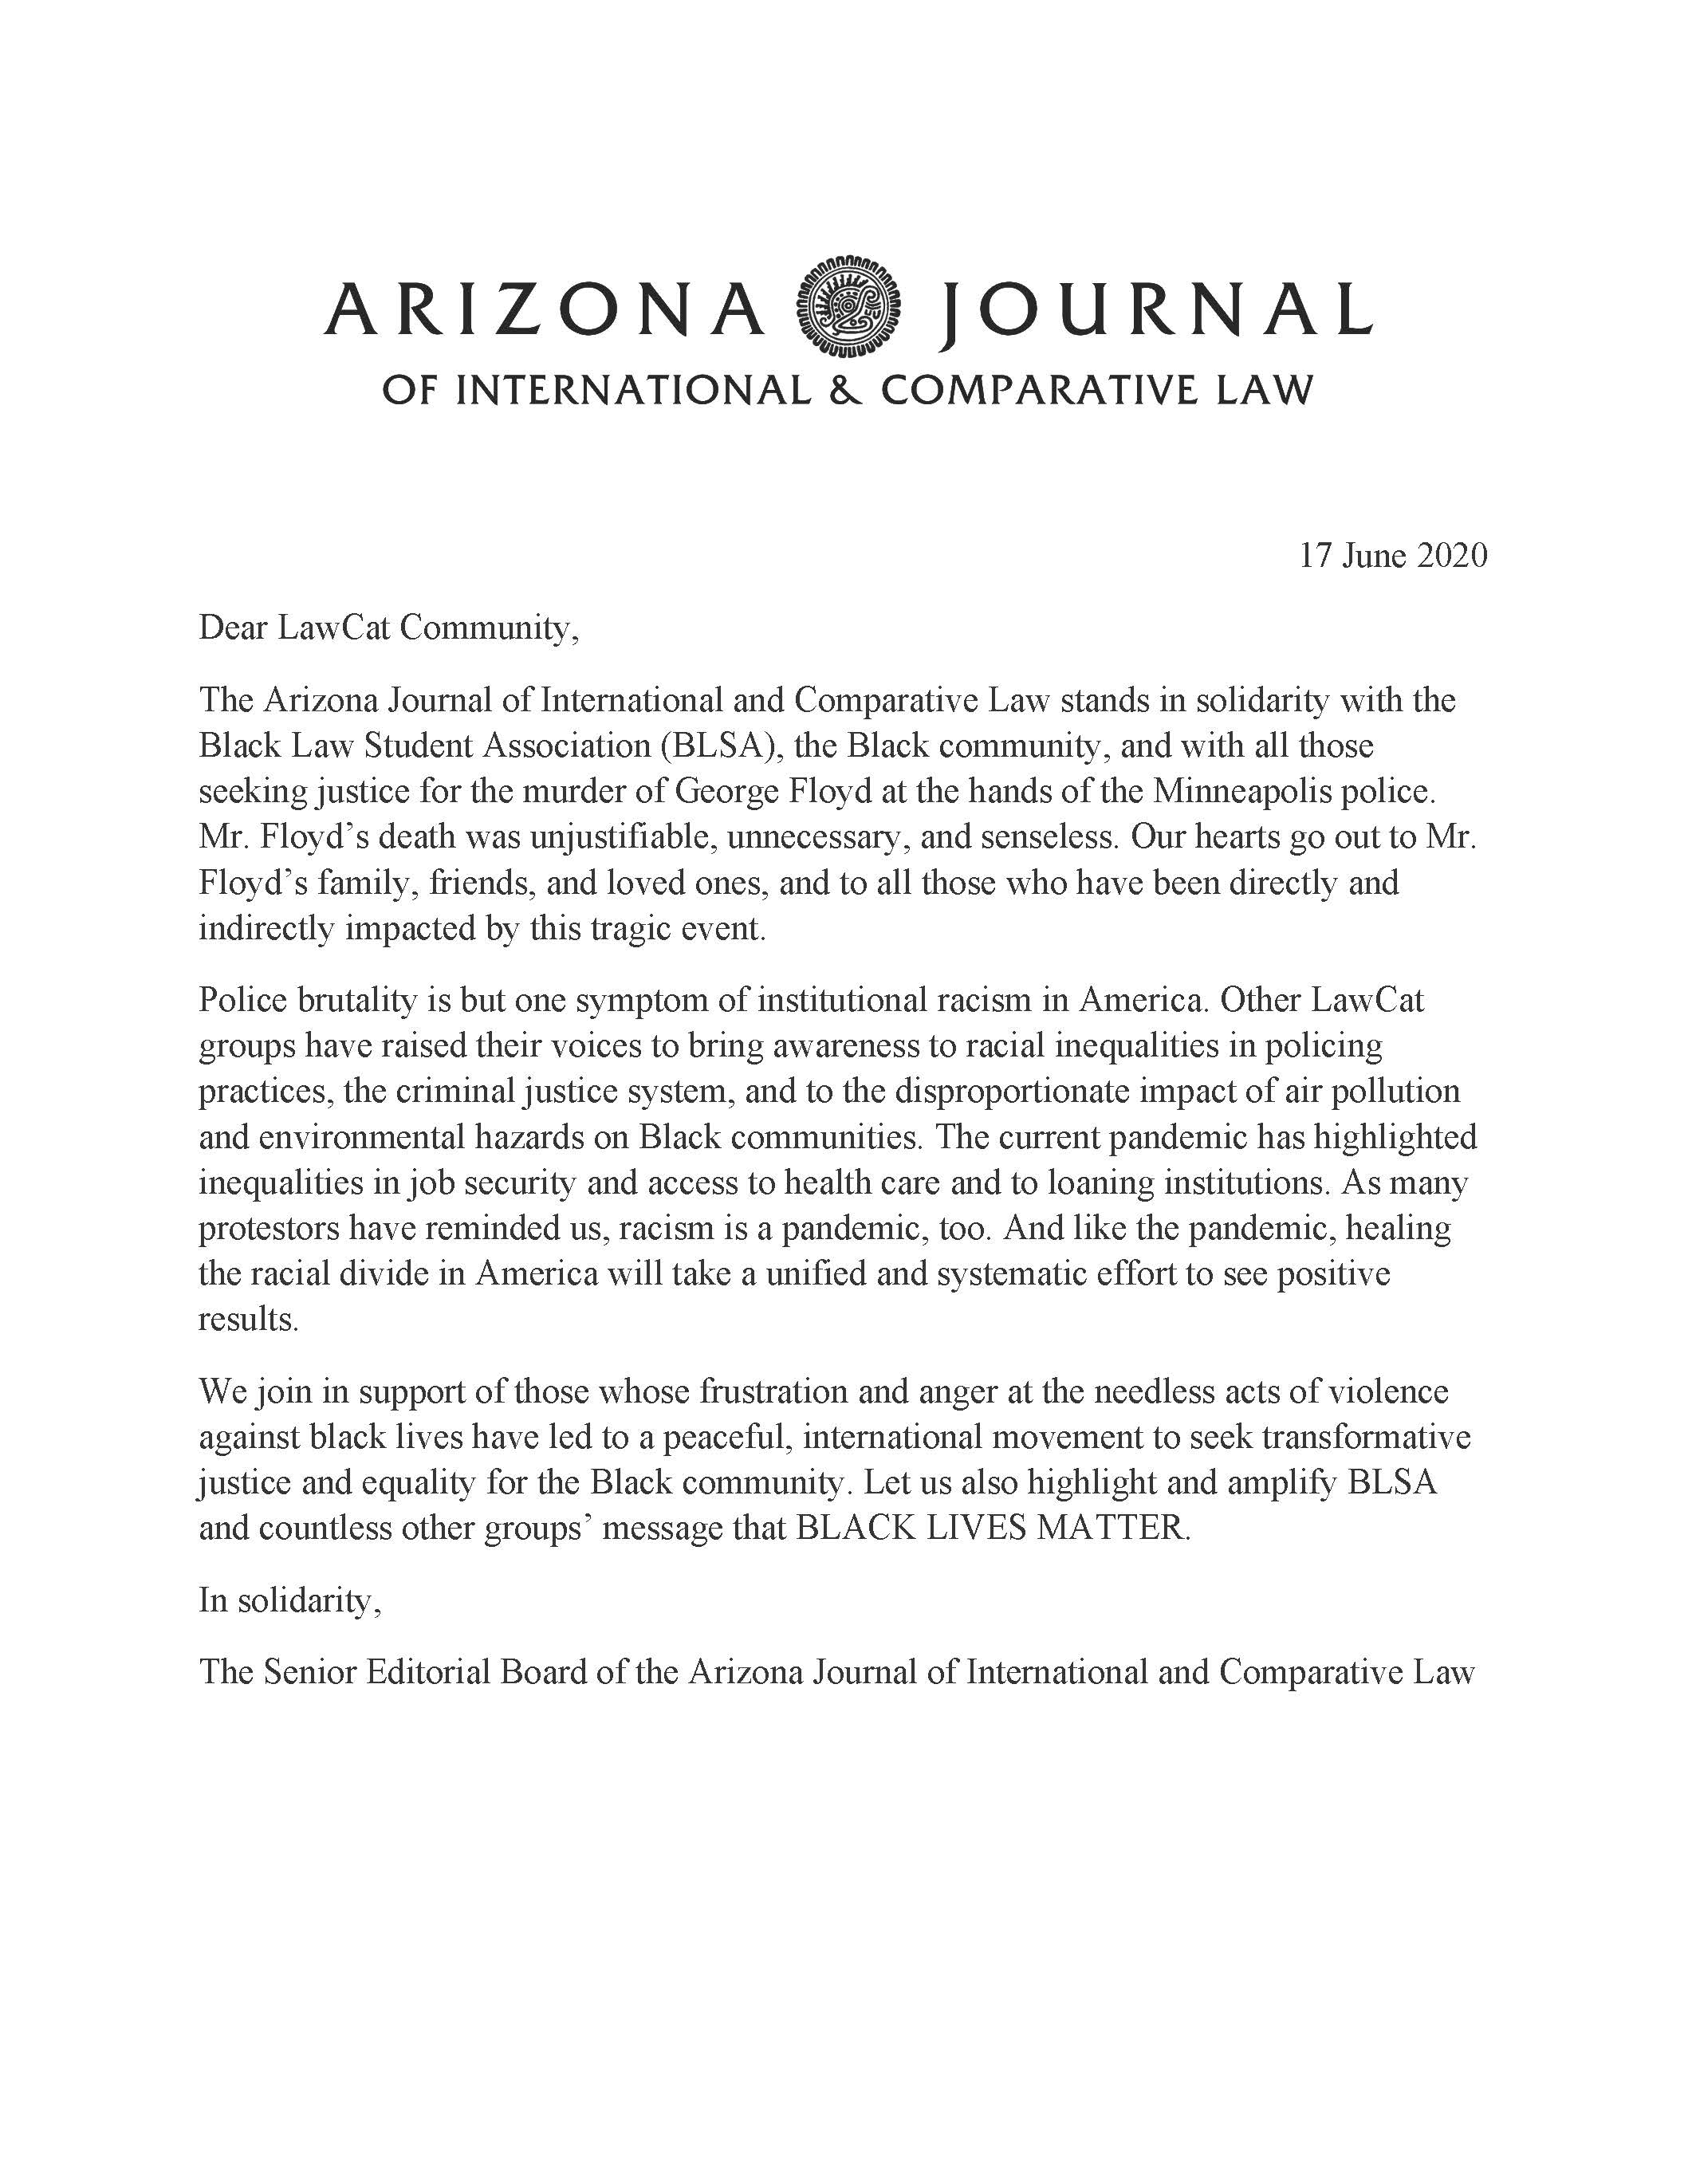 AJICL Solidarity Statement